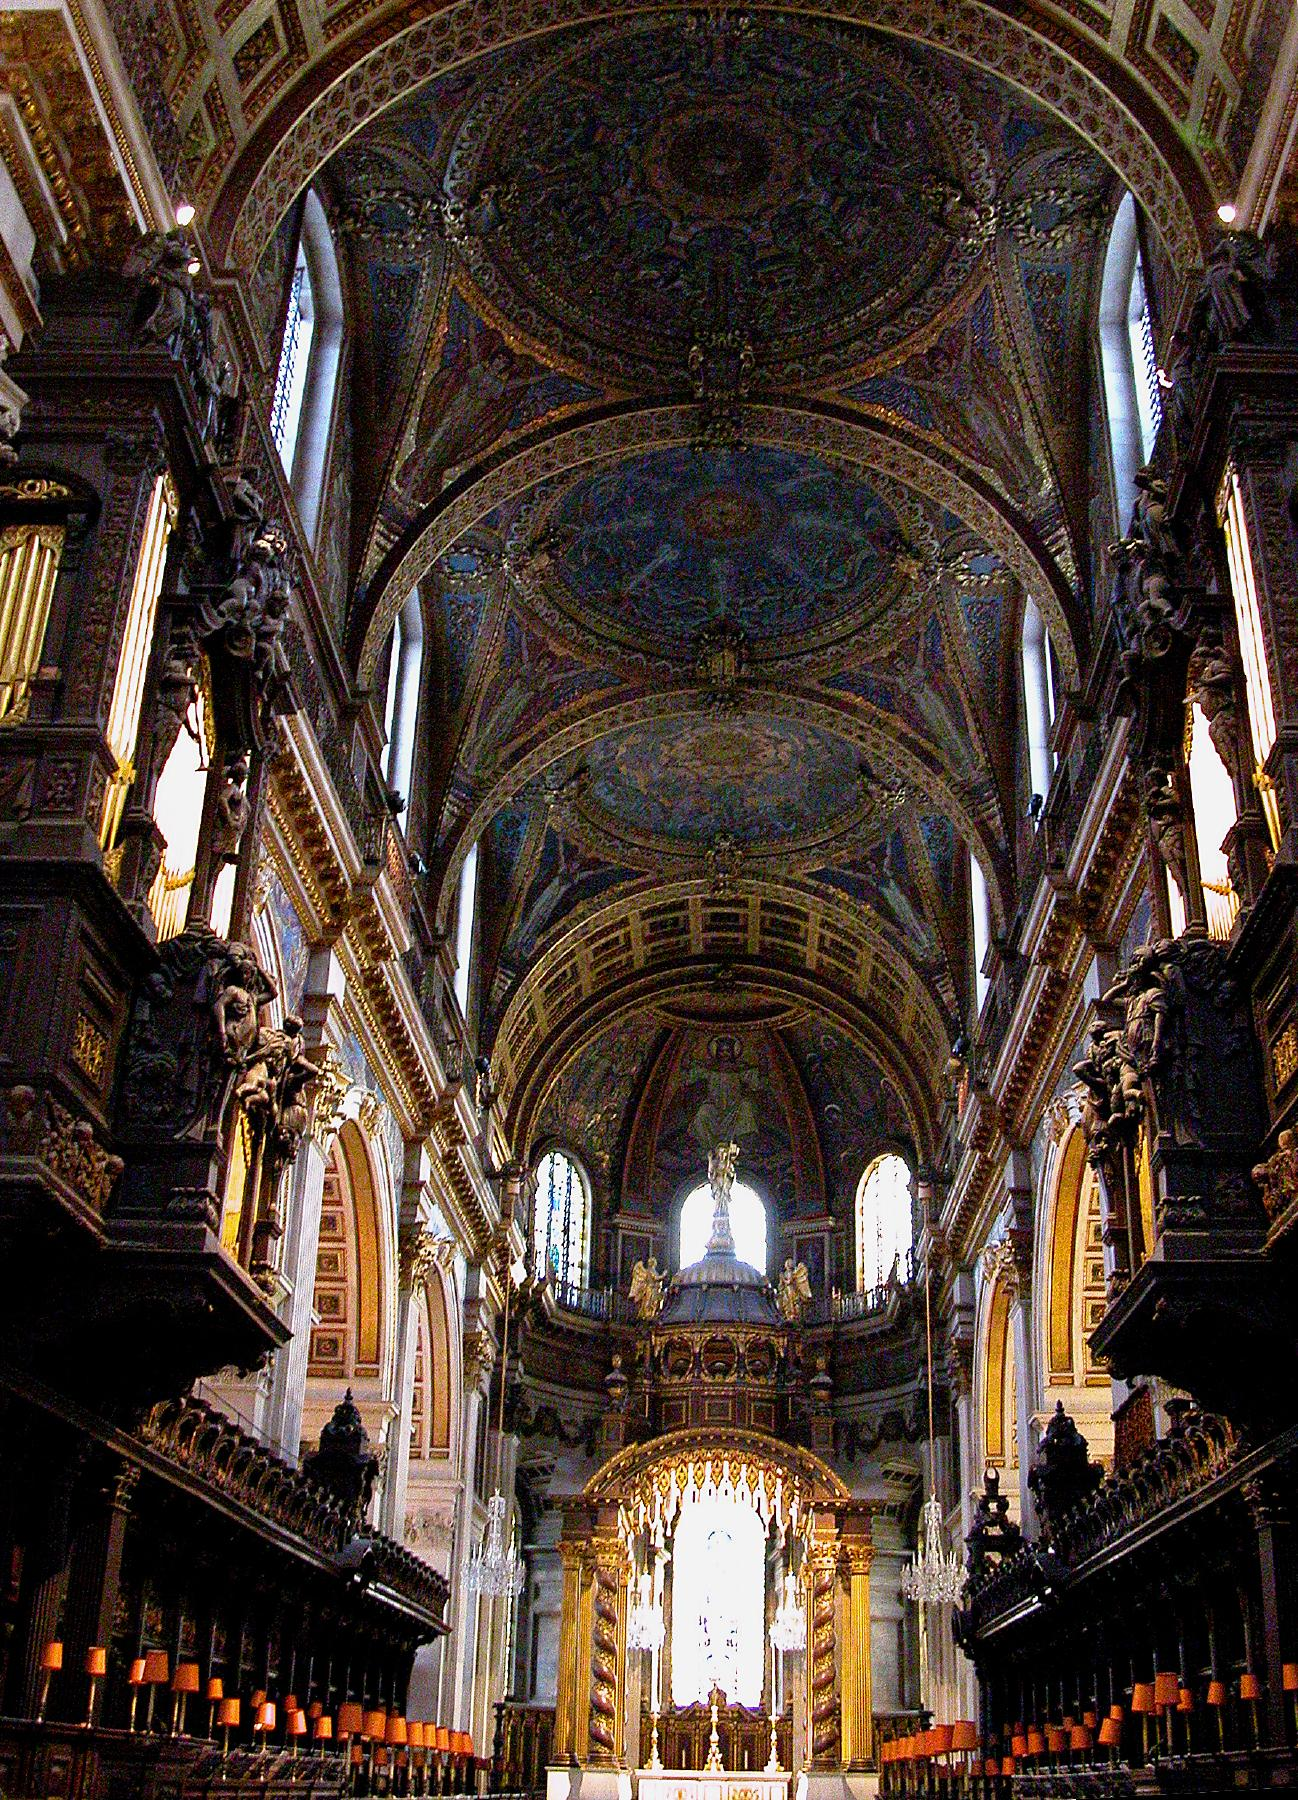 A picture of the venue for a combined concert using the combined resources of St Pauls Cathedral, London and also Westminster Abbey and Westminster Cathedral choirs  which took place on Wednesday November 21, 2018 appears below.